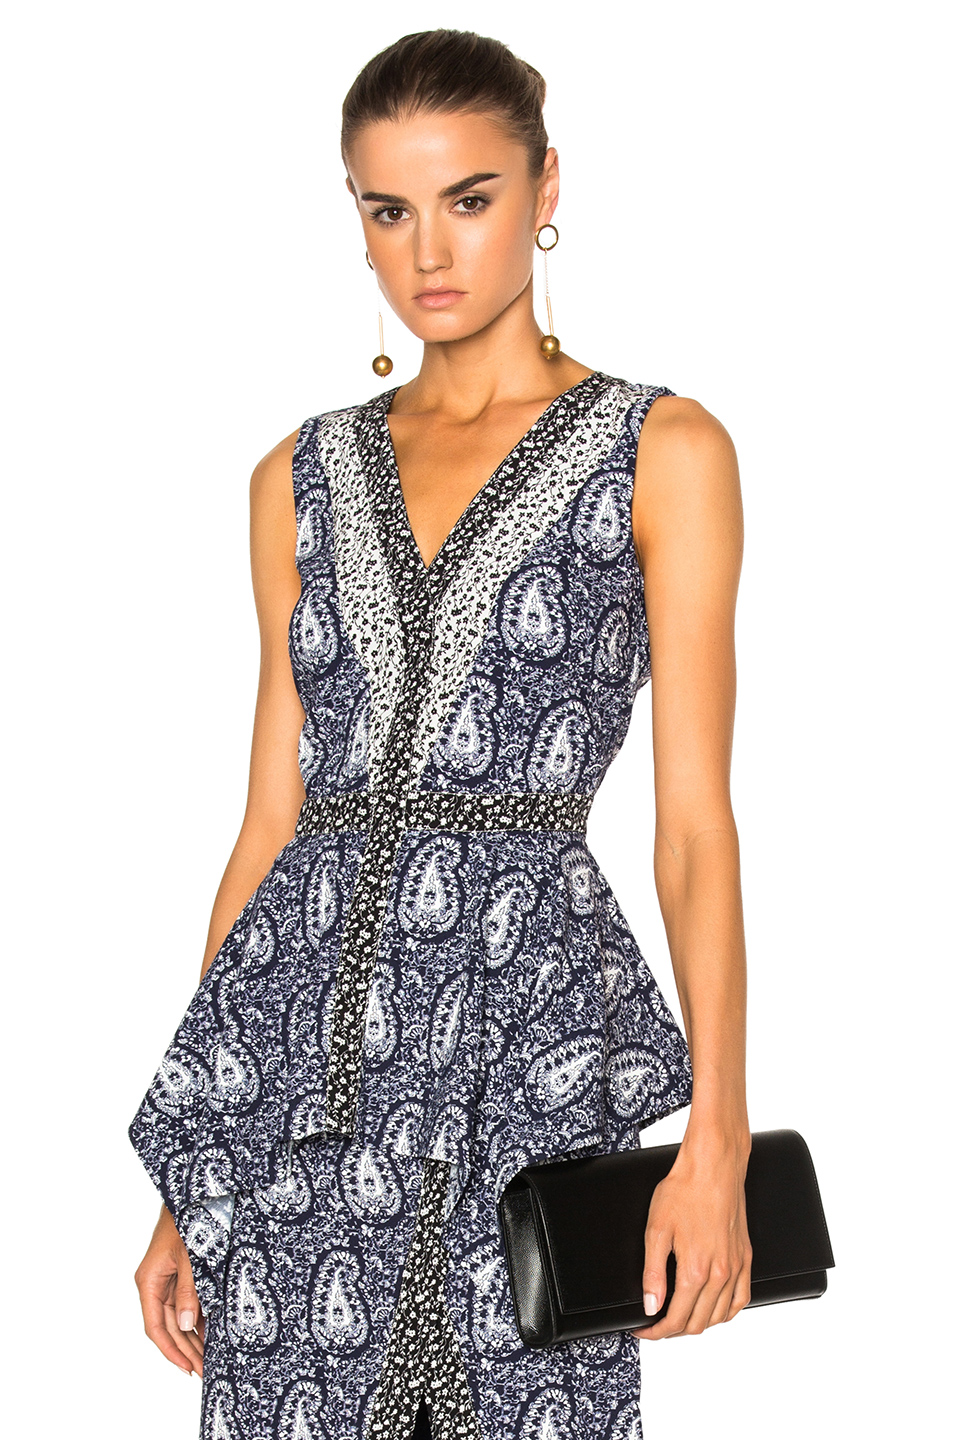 Altuzarra Elly Top in Blue,Abstract,Floral